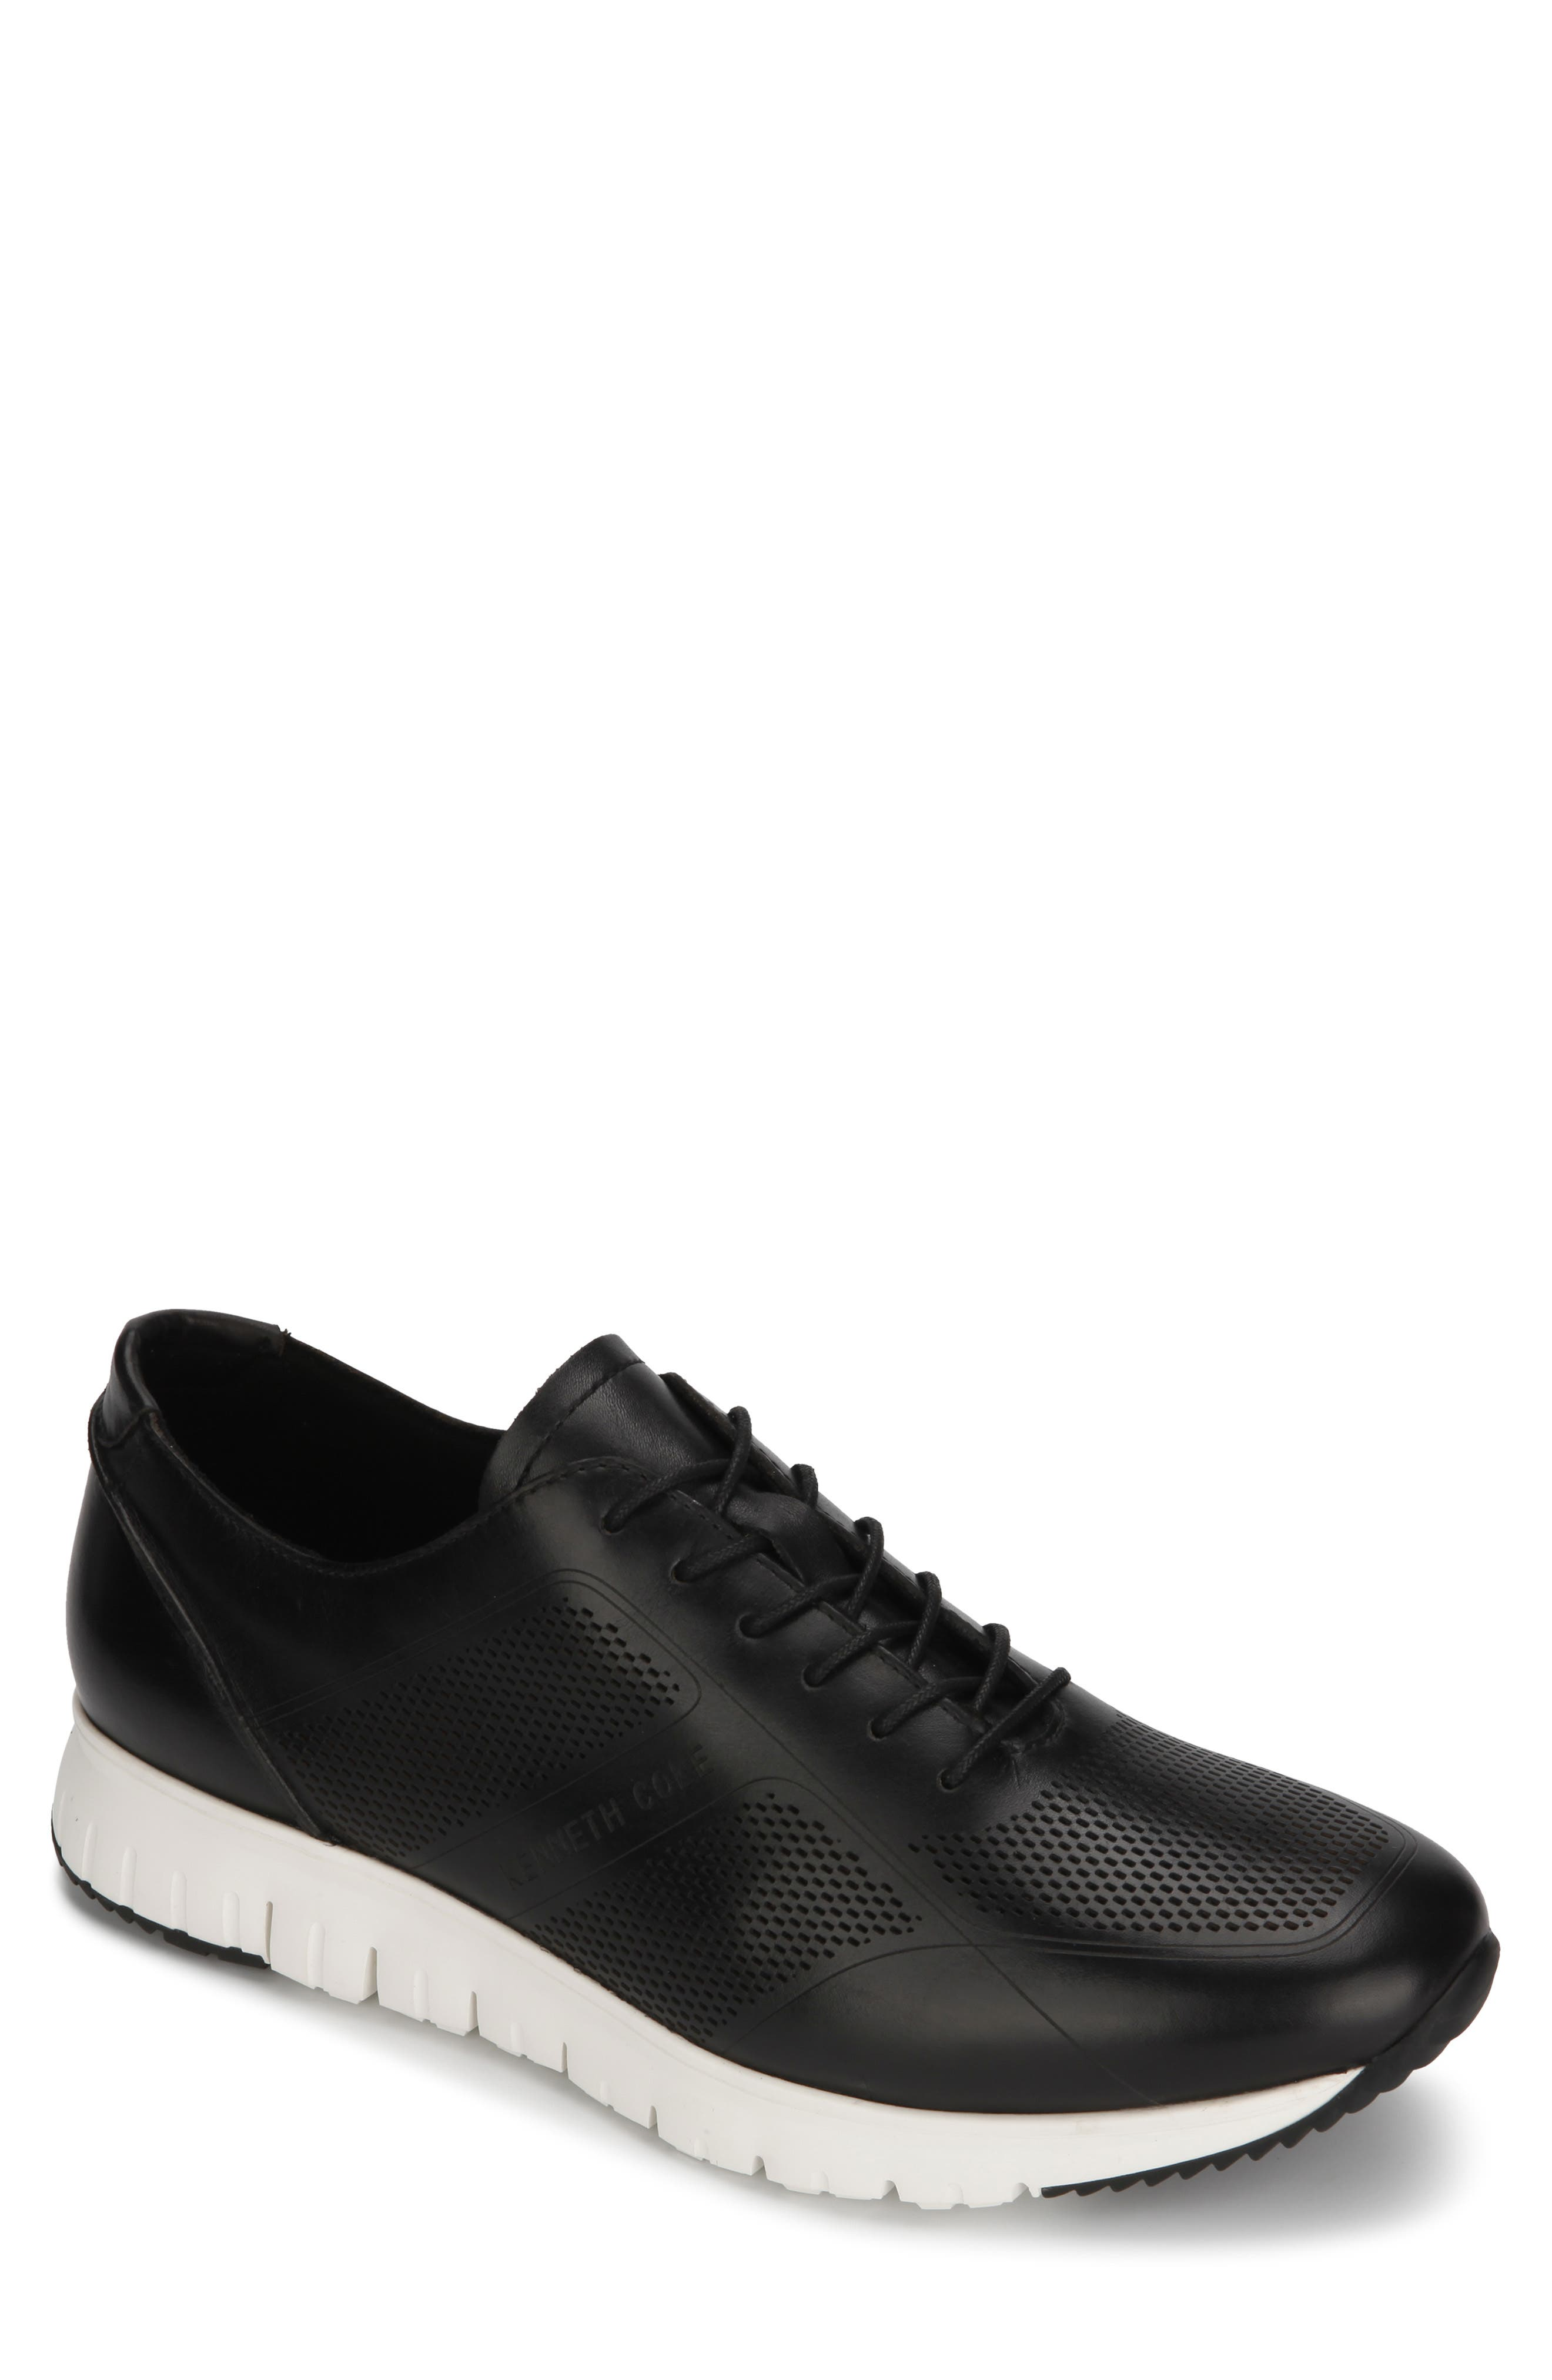 KENNETH COLE NEW YORK Bailey Sneaker, Main, color, BLACK LASERED LEATHER